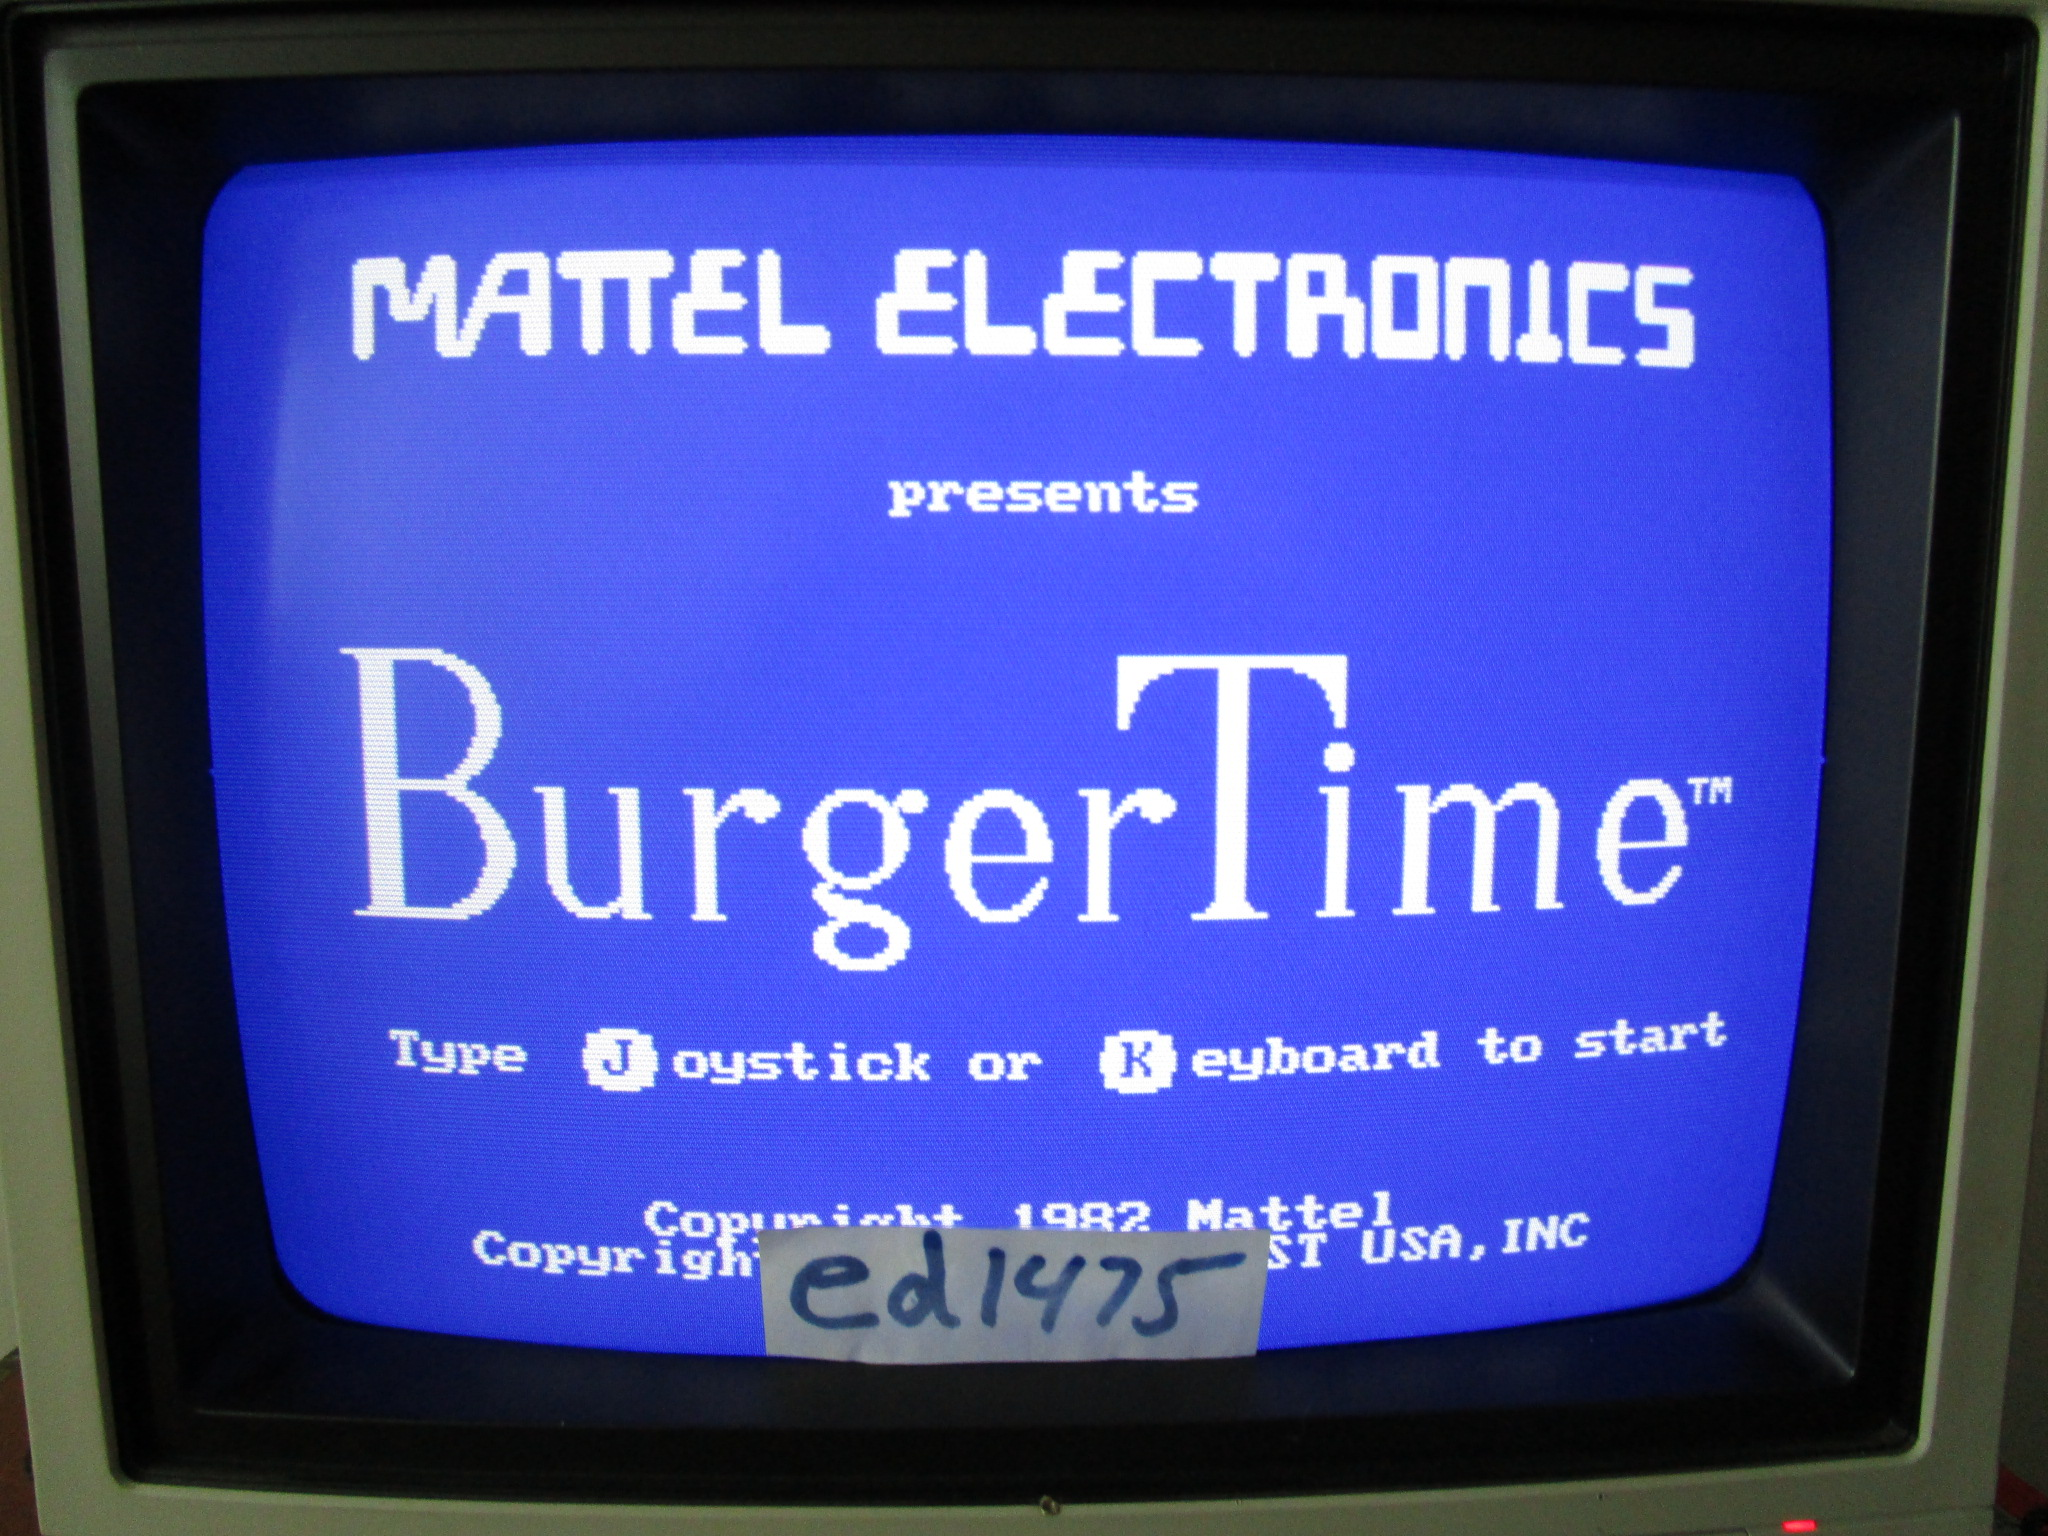 ed1475: Burgertime (PC) 21,300 points on 2015-02-02 20:15:24